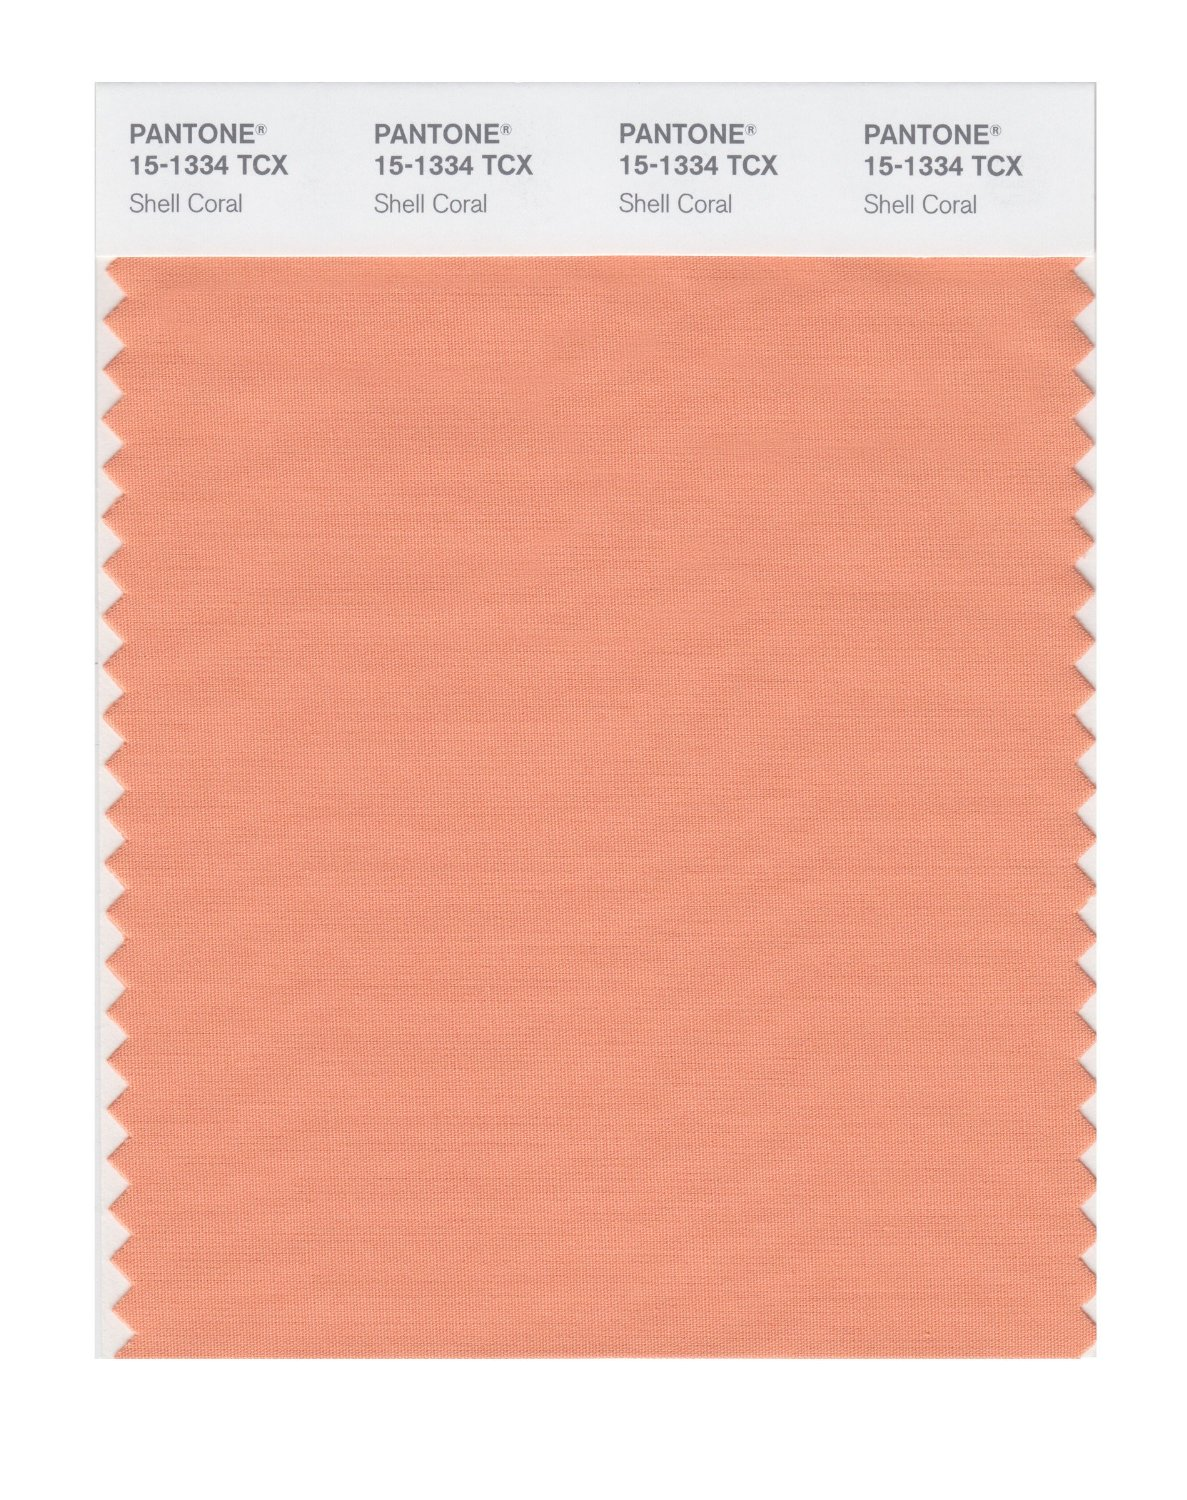 Pantone Smart Swatch 15-1334 Shell Coral